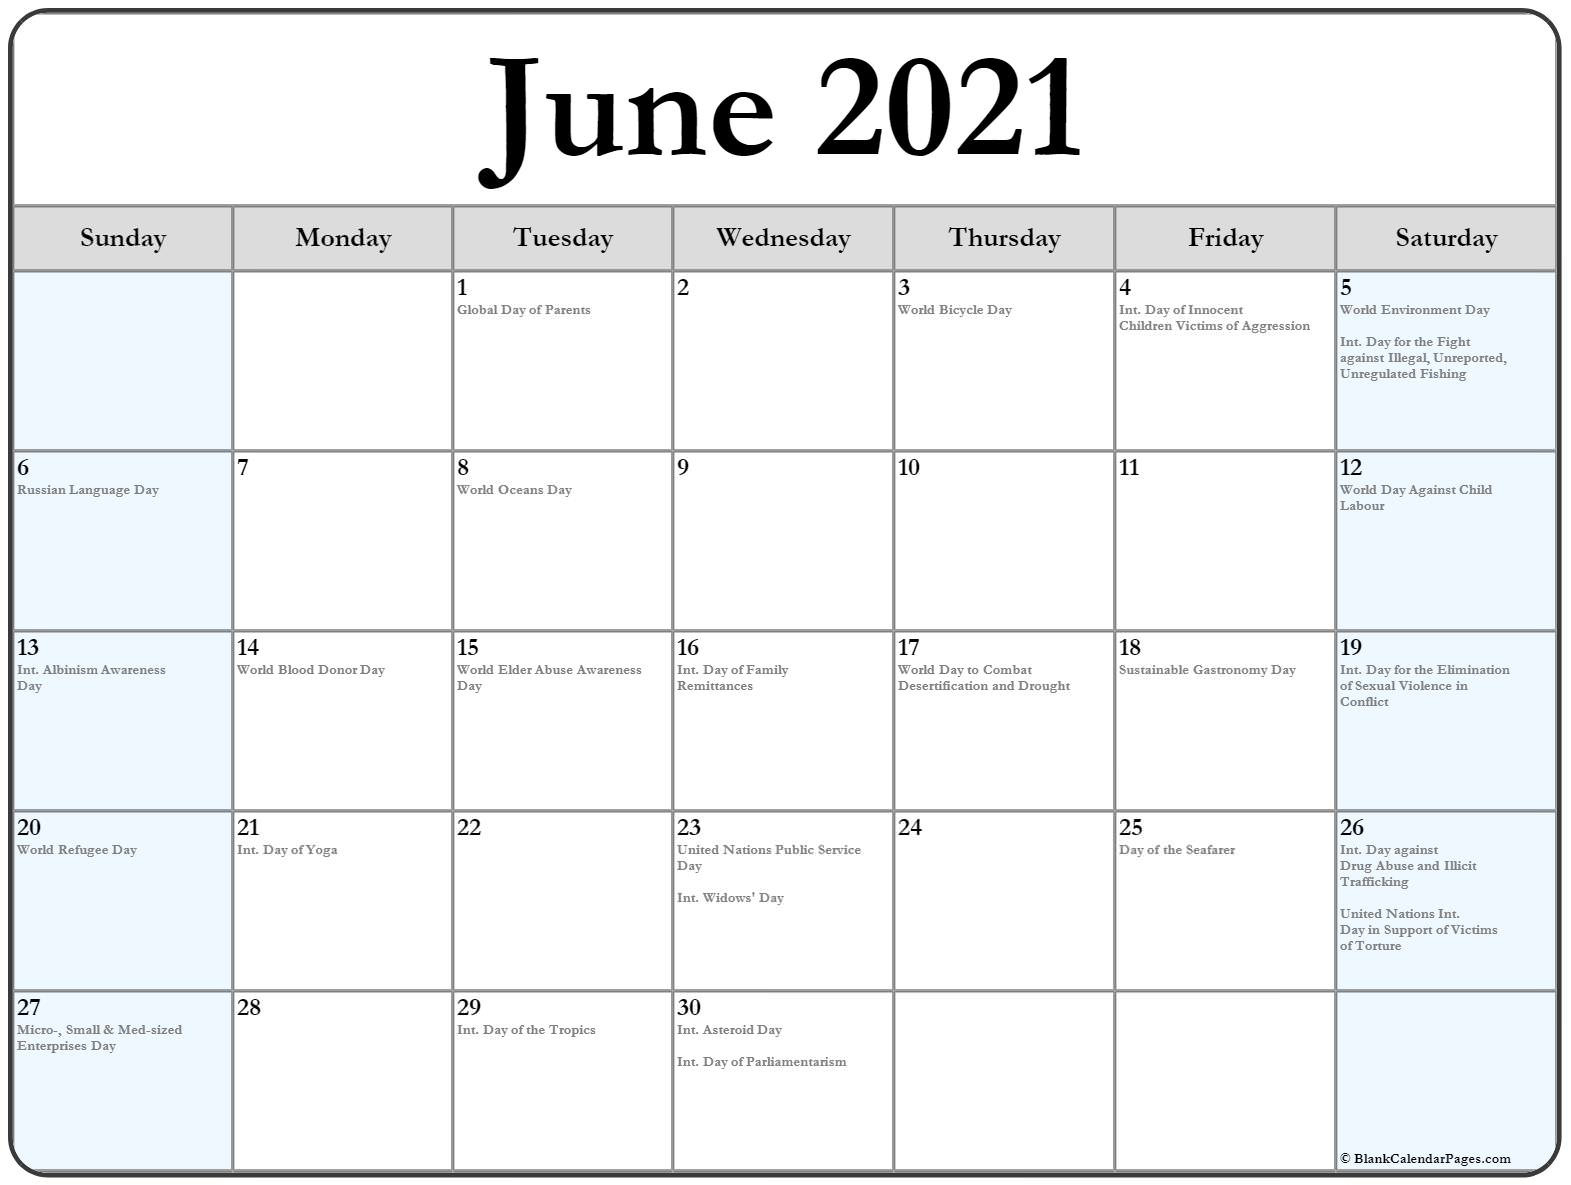 Collection Of June 2021 Calendars With Holidays  June 2021-June 2021 Calendar